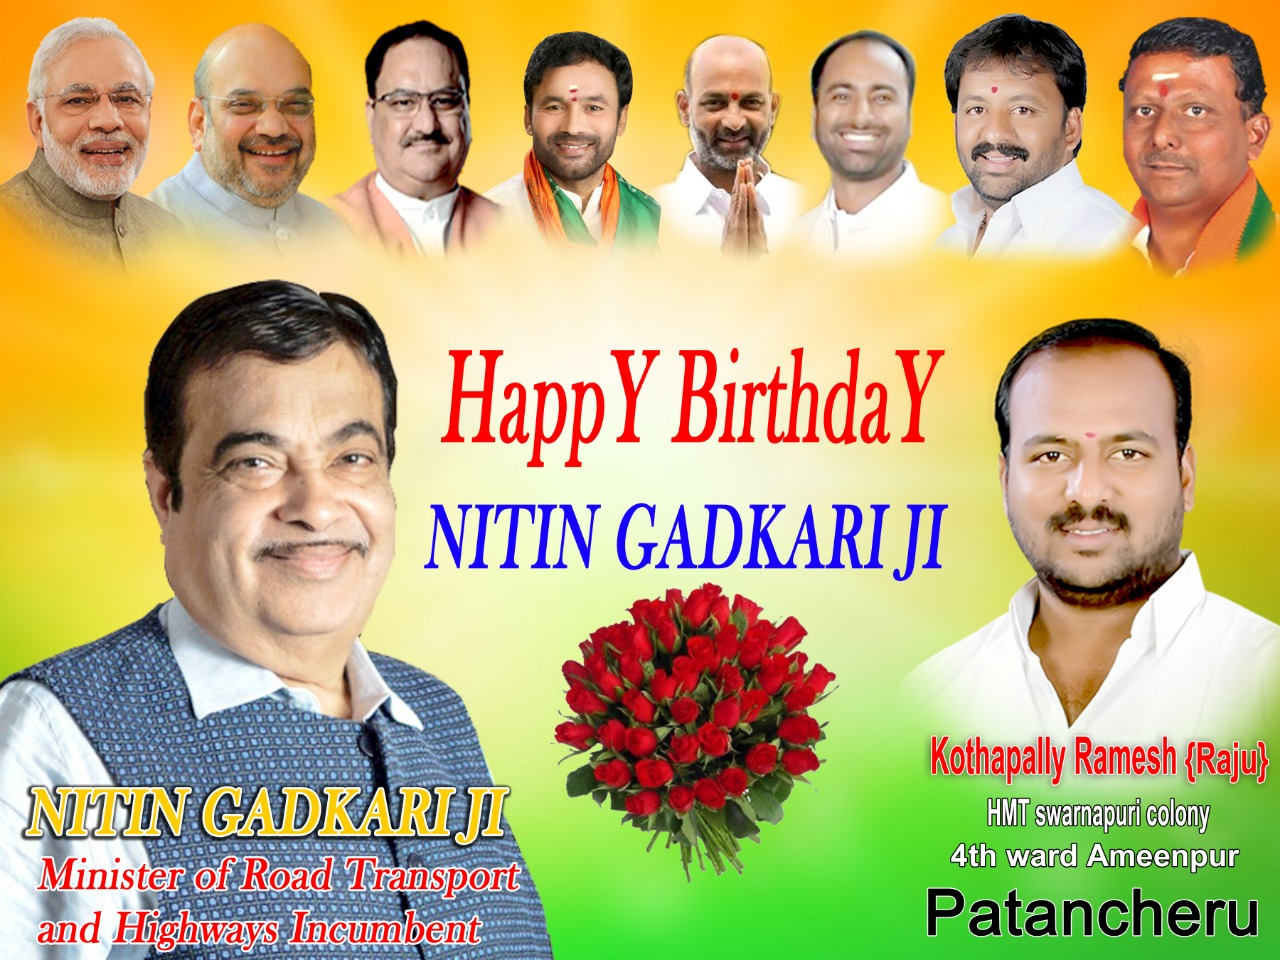 Happy Birthday to you nitin gadkari ji